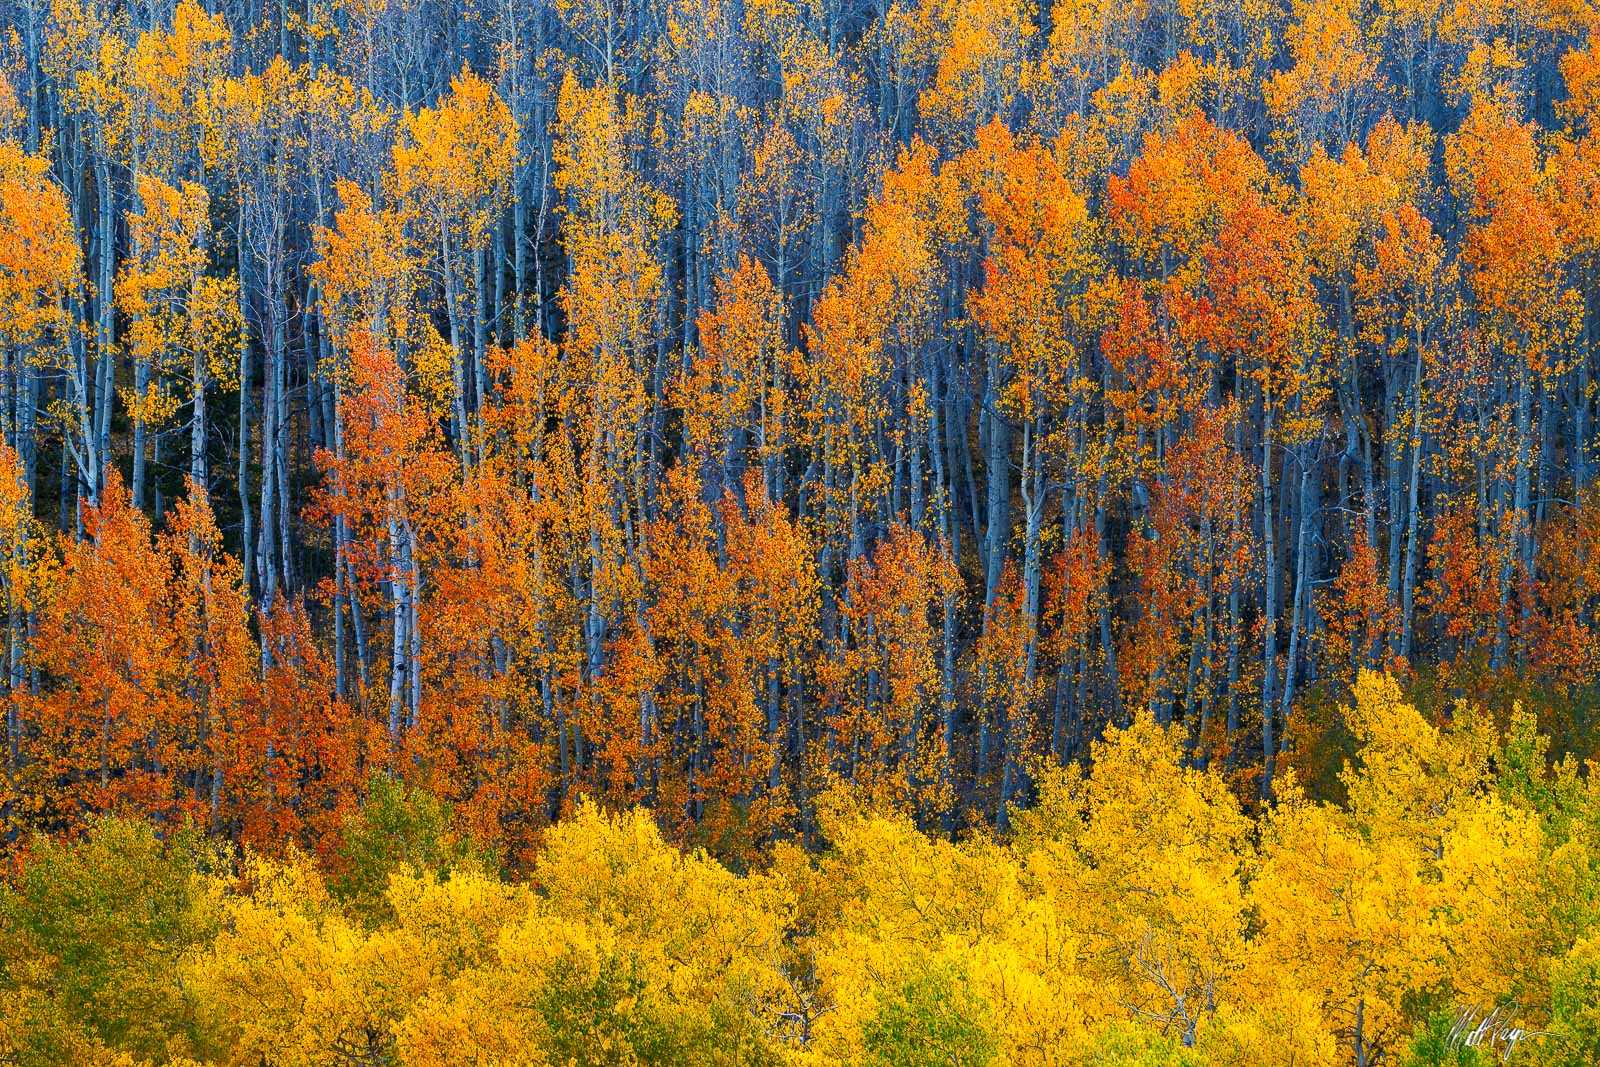 Afternoon autumn sun cascading through an aspen forest canopy creates great light and reveals these colorful layers of fall color...